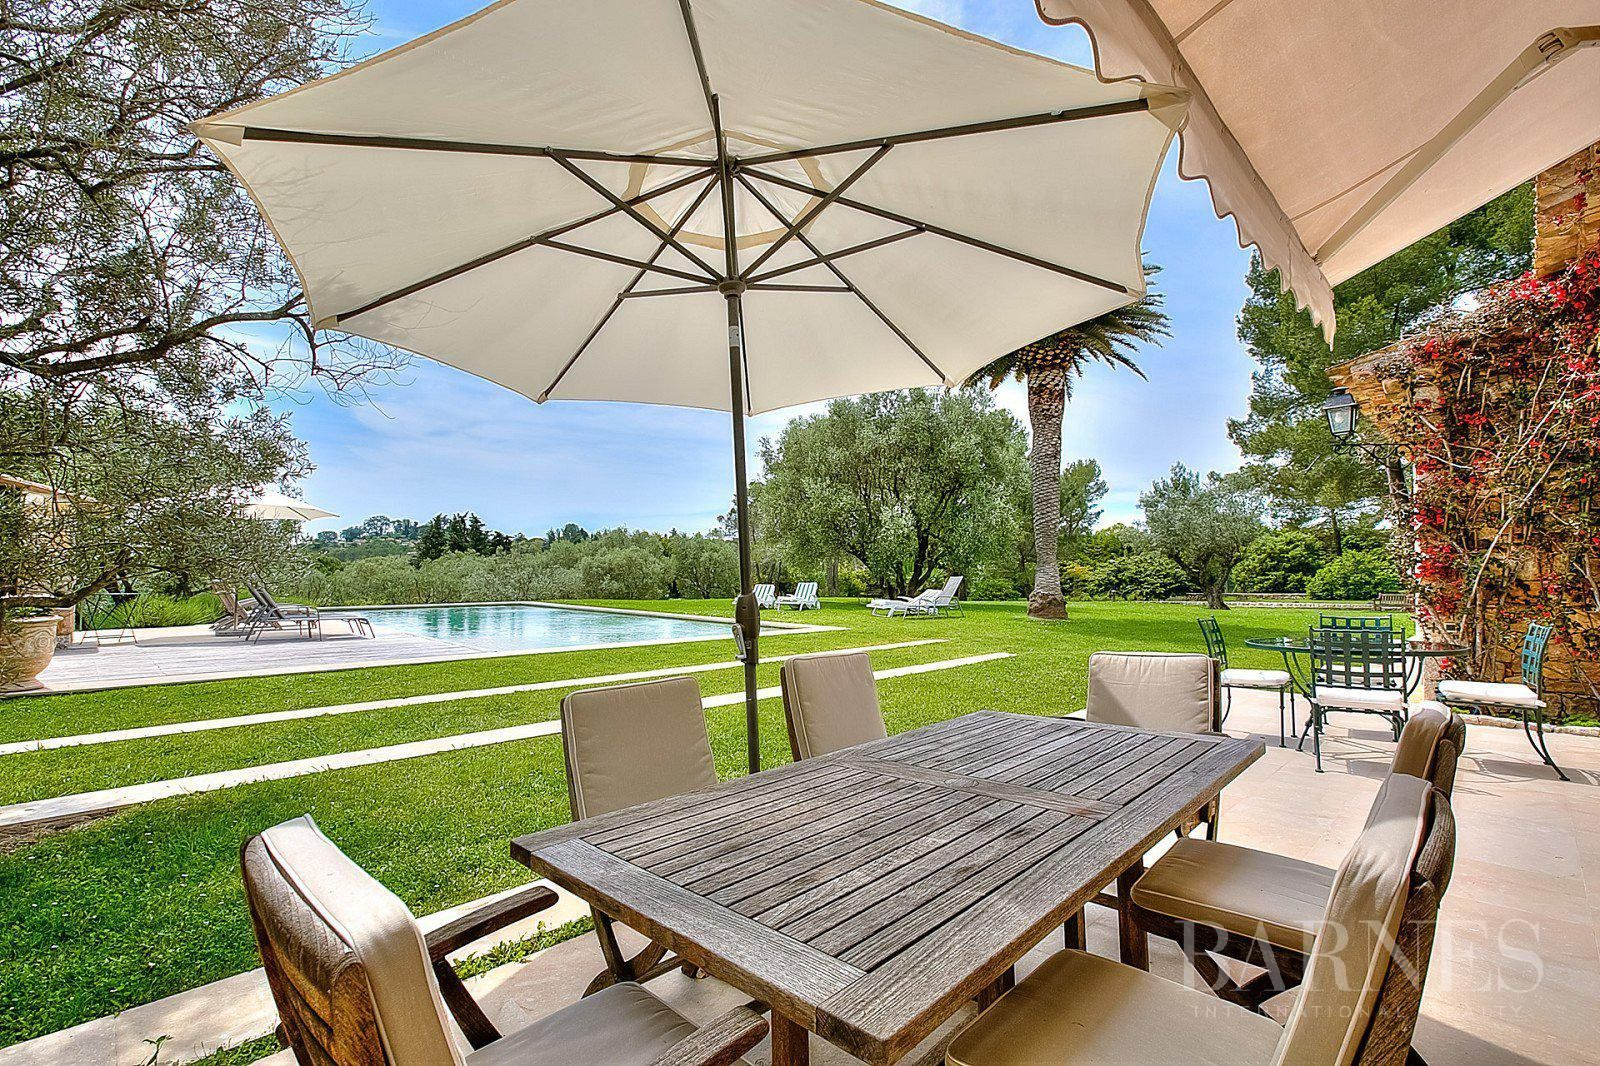 MOUANS SARTOUX - SPLENDID STONE MAS - 8 BEDROOMS - POOL - LARGE GARDENS